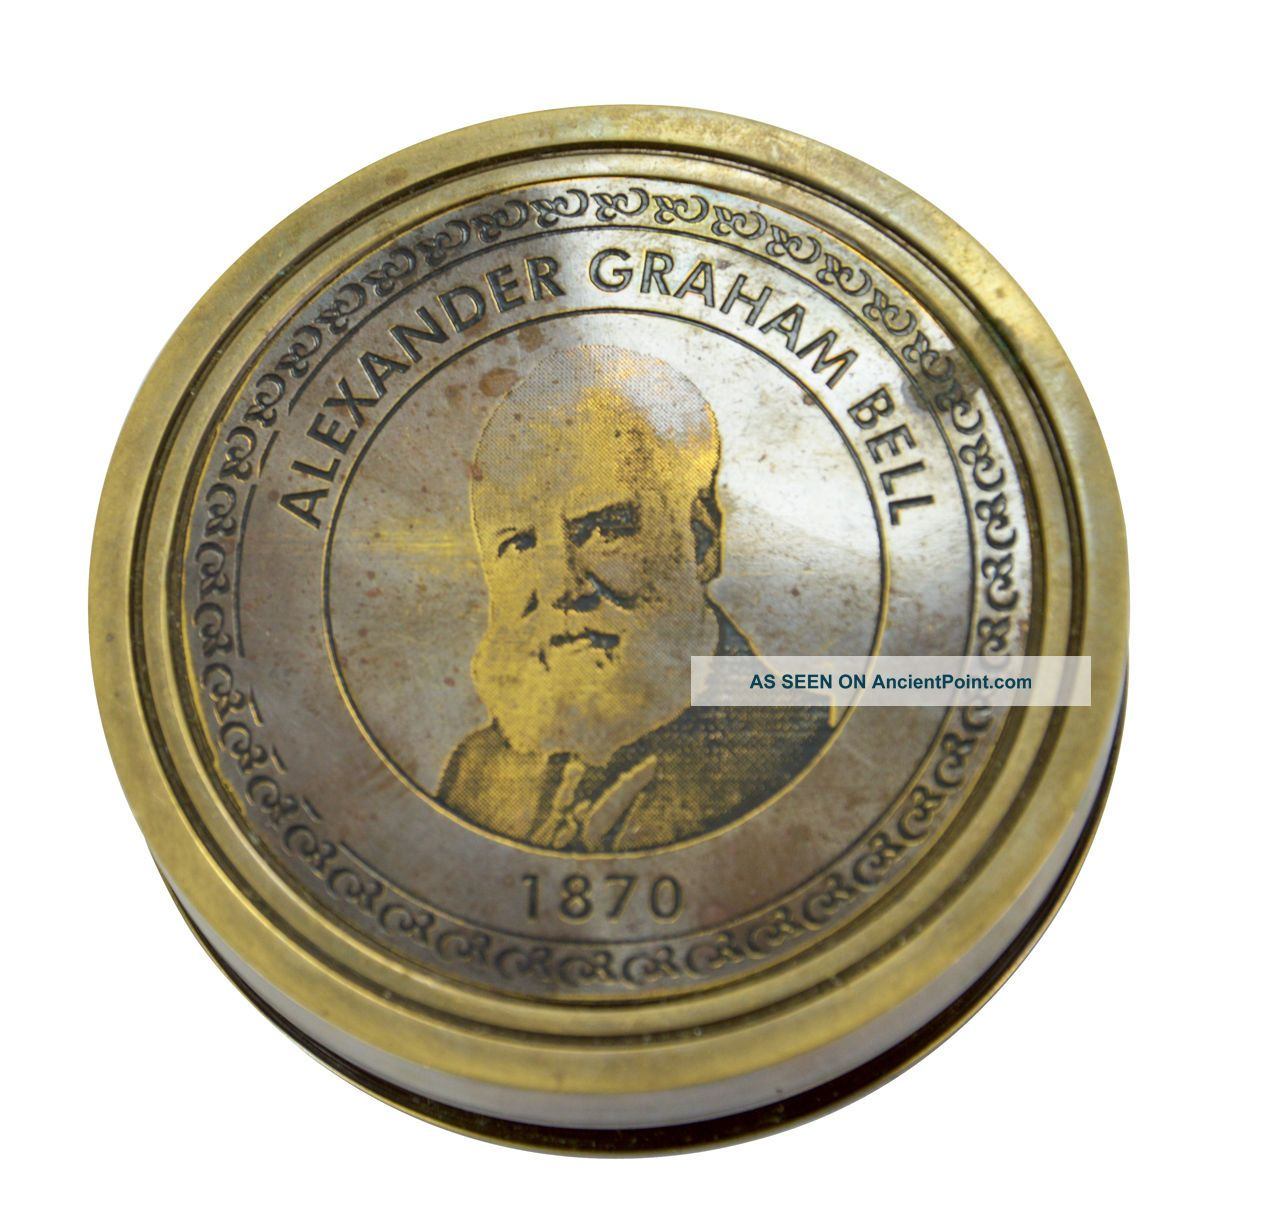 Handmade Marine Alexander Graham Bell 1870 Pocketcompass With His History Inside See more Handmade Marine Alexander Graham Bell 1870 Poc... photo